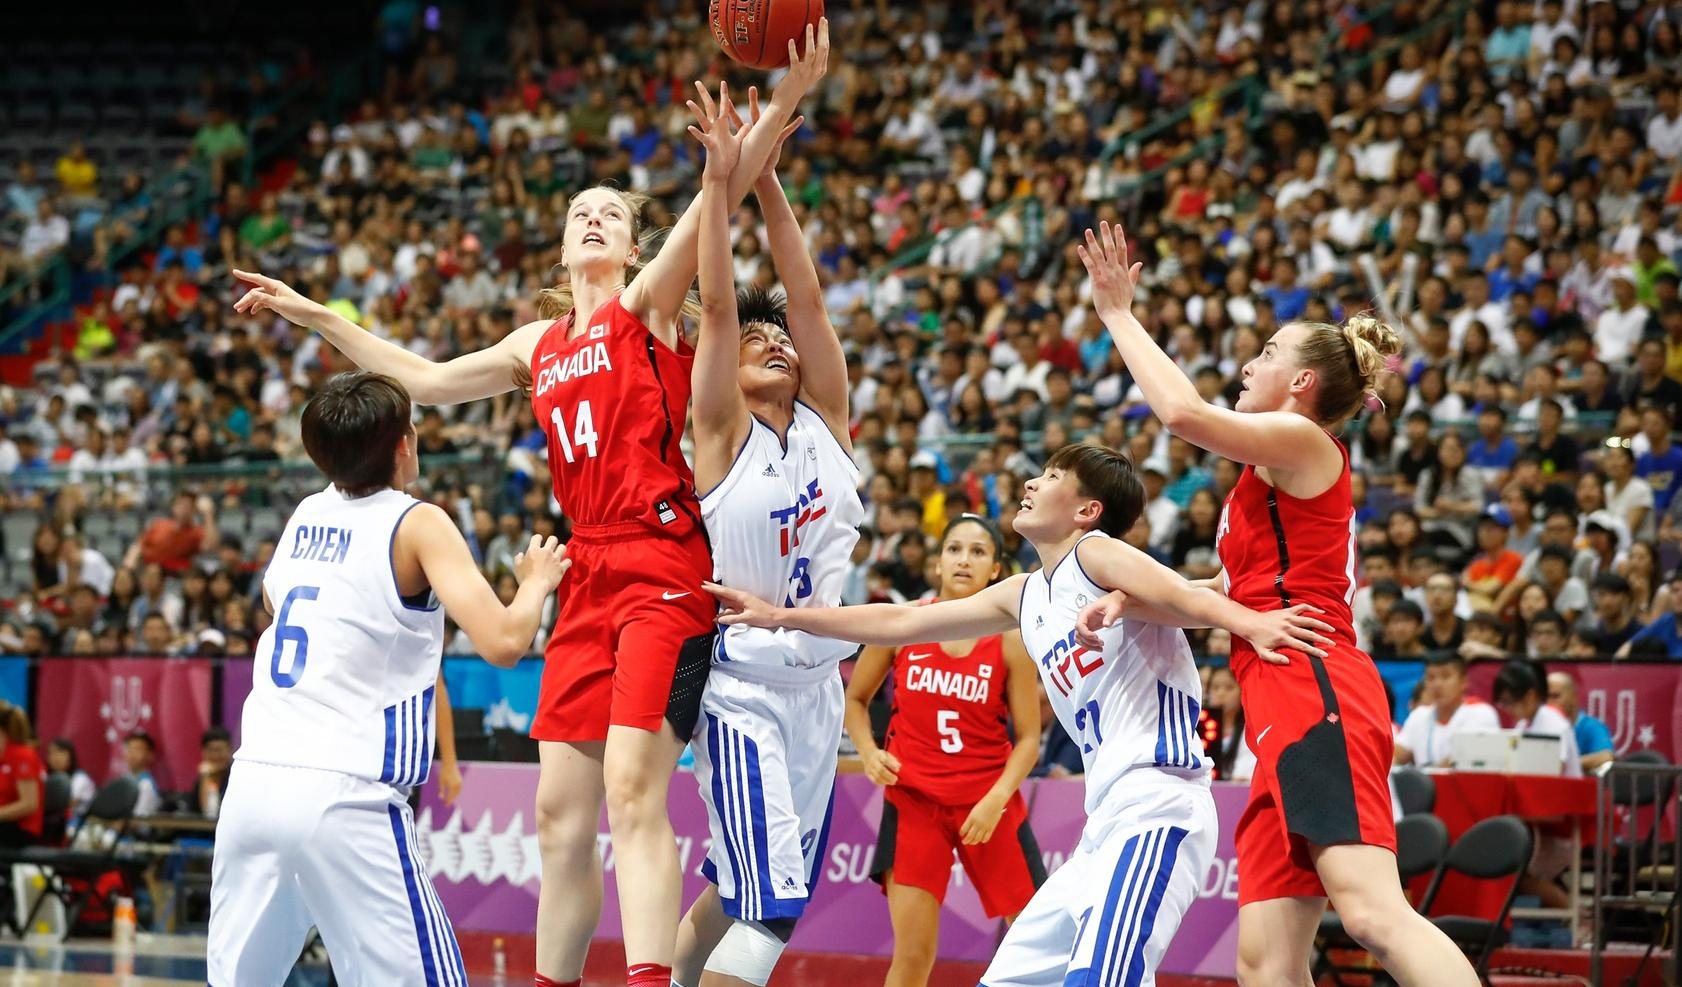 Mathieu Belanger / Alex Kiss-Rusk (McGill University) fights for the ball during women's basketball action against Chinese Taipei on Friday. Canada lost their quarter-final 74-67 to the hosts and will now play 5-8th place games.